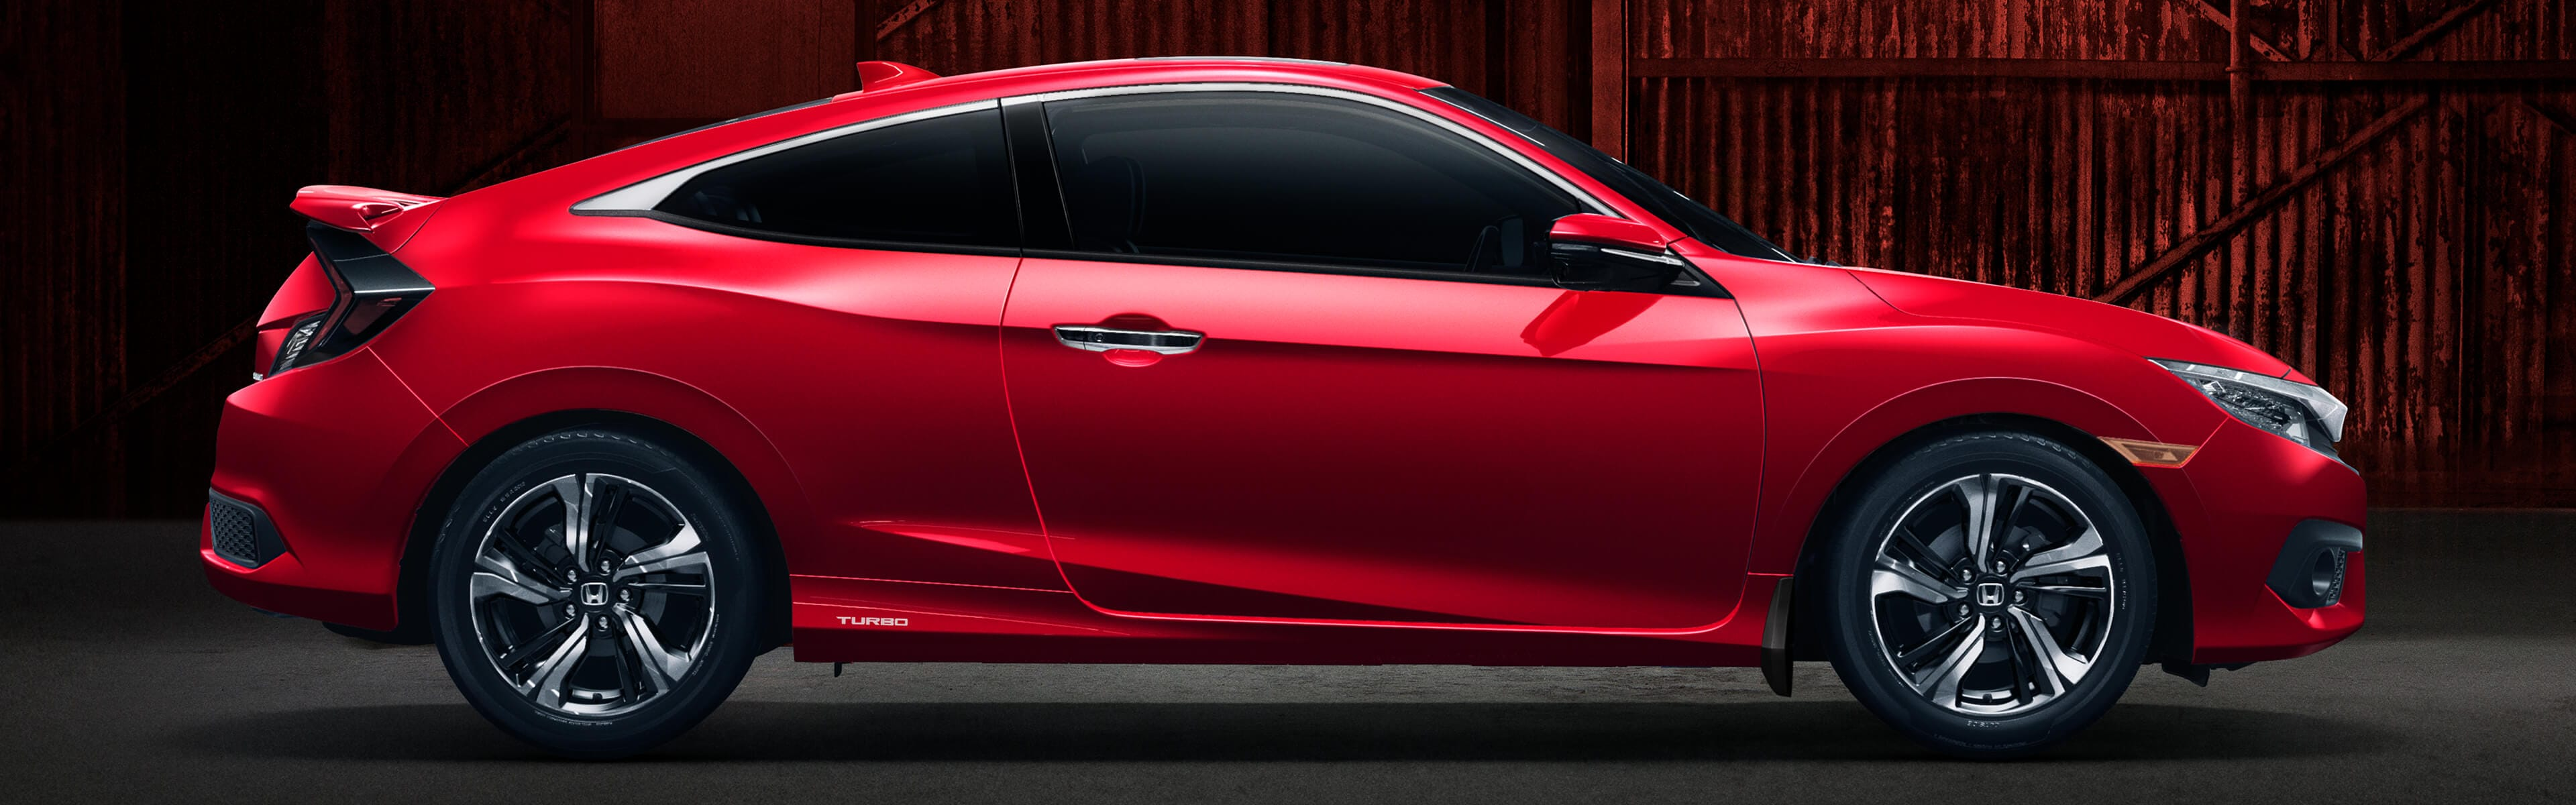 The 2018 Civic Coupe Honda Canada